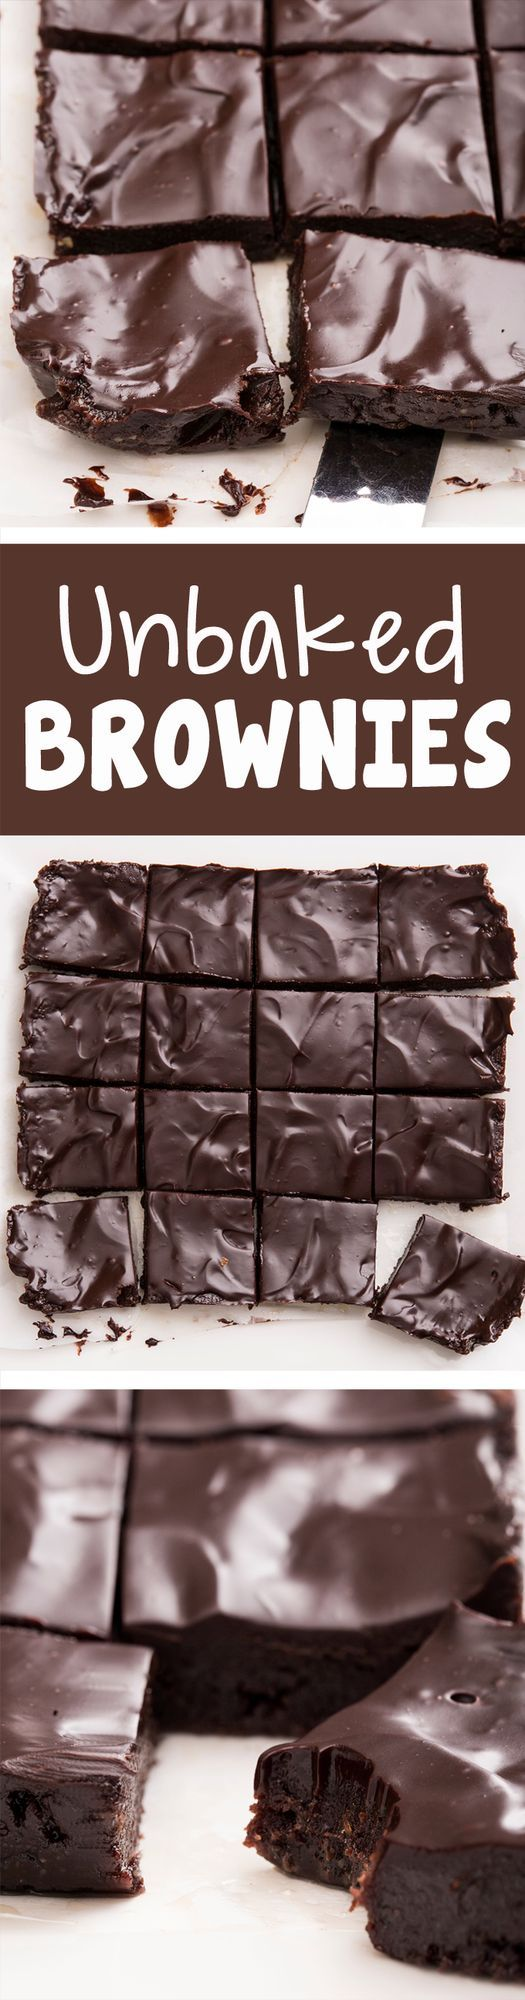 Ooey gooey, melty, chocolatey unbaked brownies – the perfect recipe for those days when you just really need a brownie!  And if you're anything like me, that would be every day. Good thing these babie